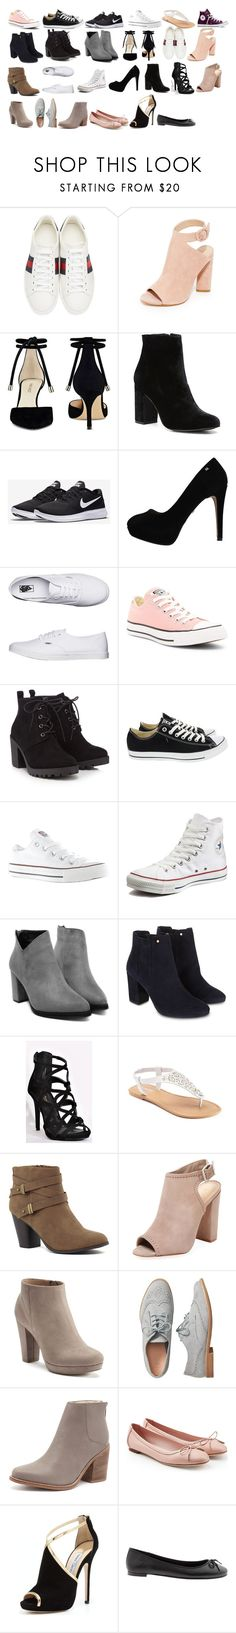 """""""Sem título #36"""" by lilymadoxx on Polyvore featuring Gucci, Kendall + Kylie, Nine West, Witchery, NIKE, Vans, Converse, Red Herring, Monsoon e SONOMA Goods for Life"""